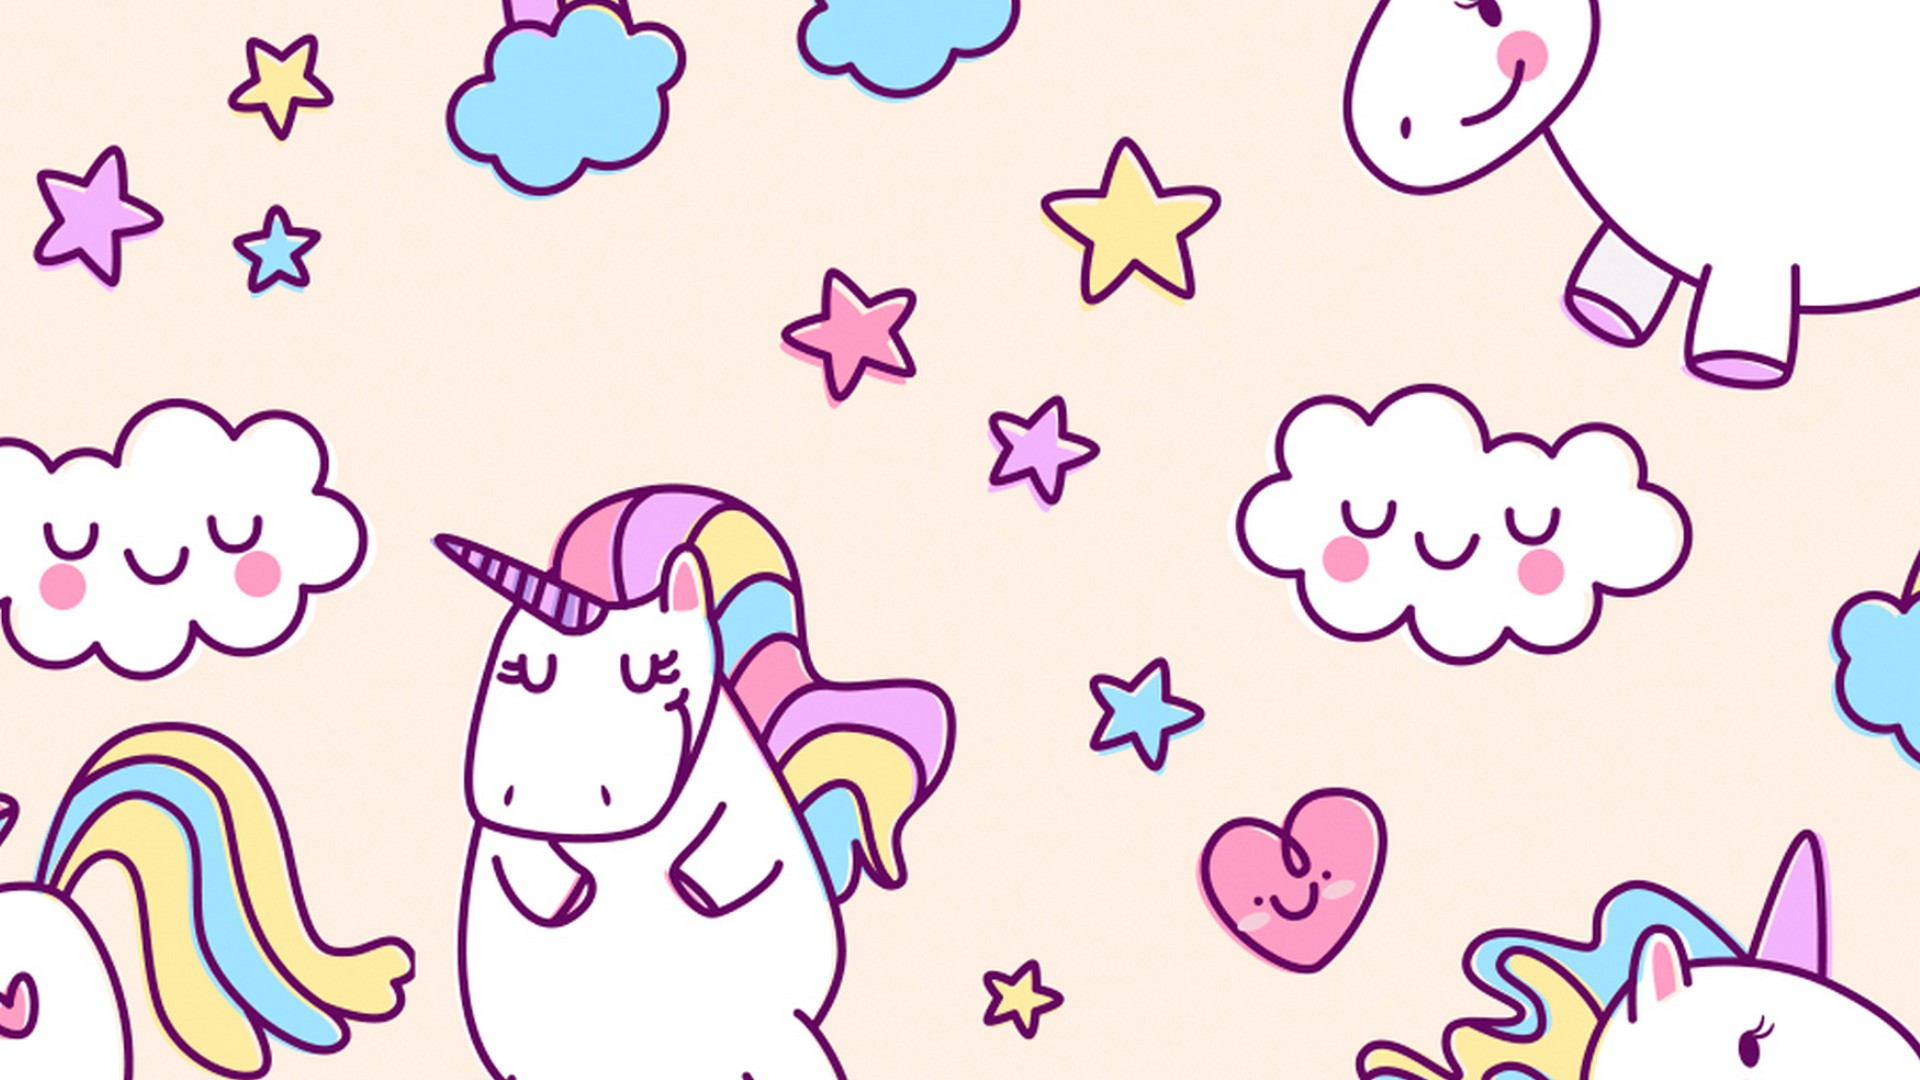 Desktop Wallpaper Cute Unicorn with high-resolution 1920x1080 pixel. You can use this wallpaper for your Windows and Mac OS computers as well as your Android and iPhone smartphones